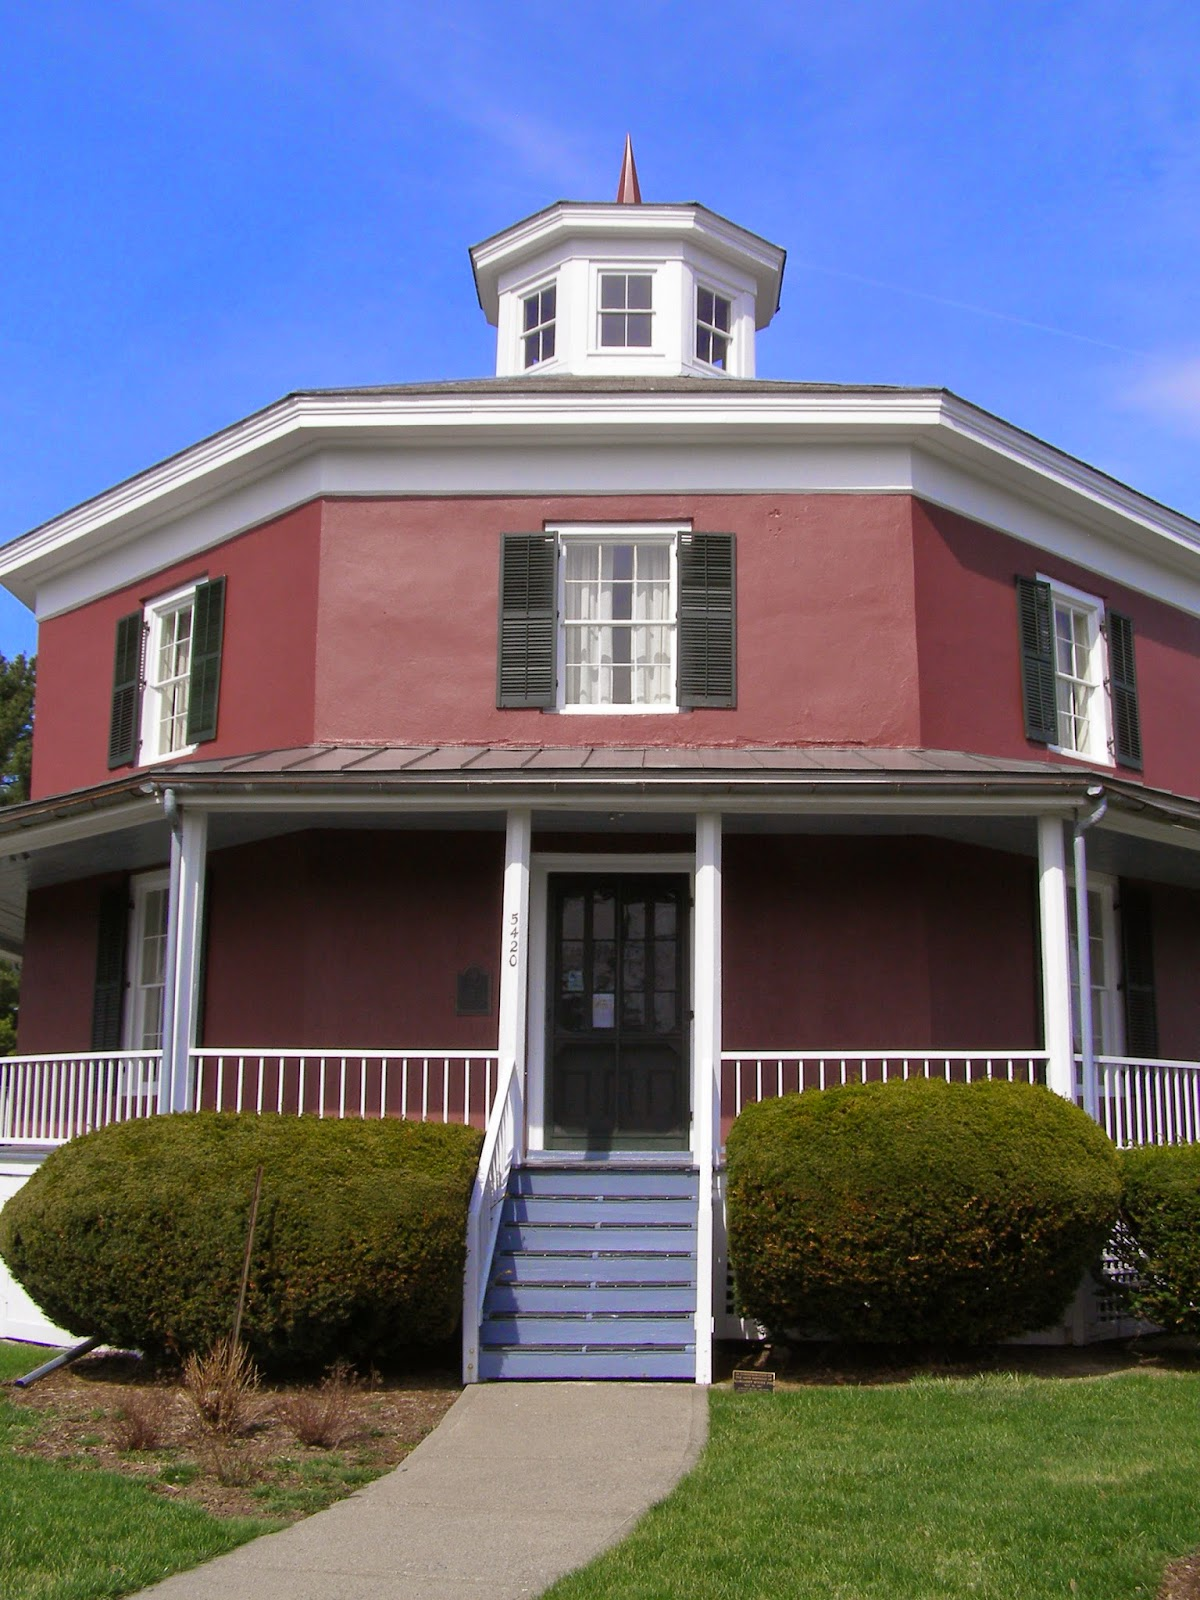 My central new york beyond the box resurrection and for Octagon homes